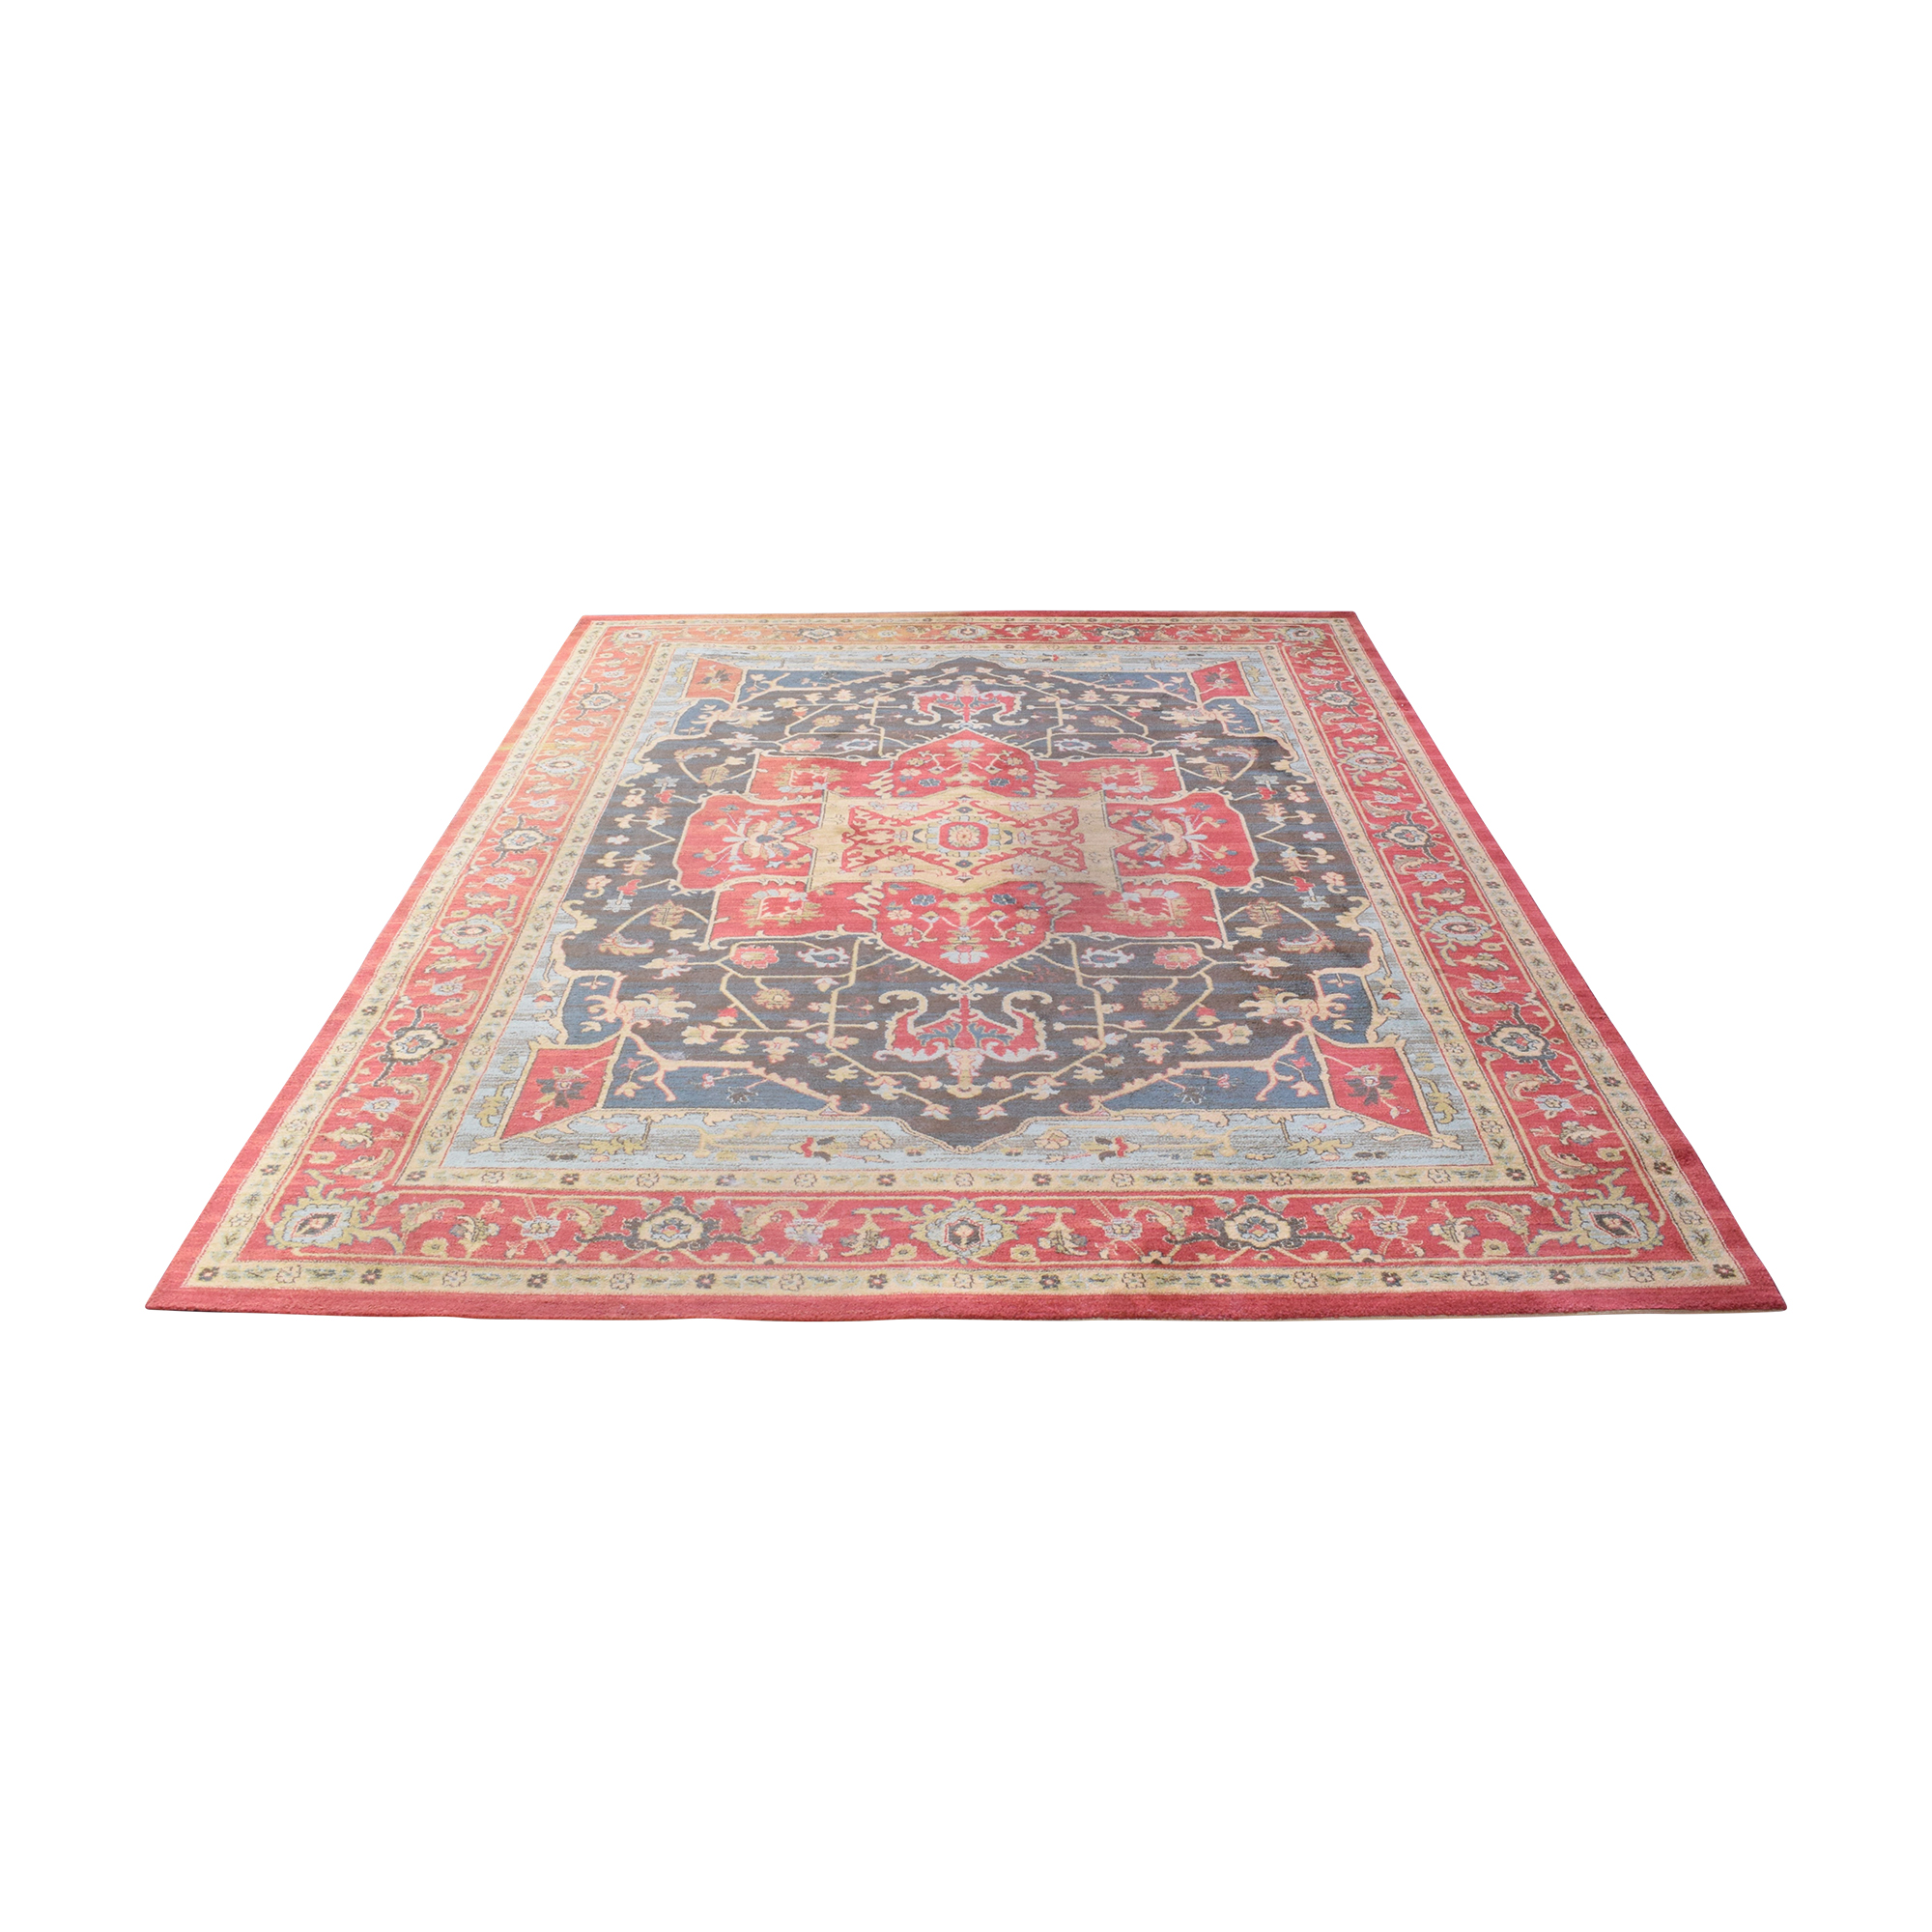 Safavieh Mahal 9x12 Rug / Decor